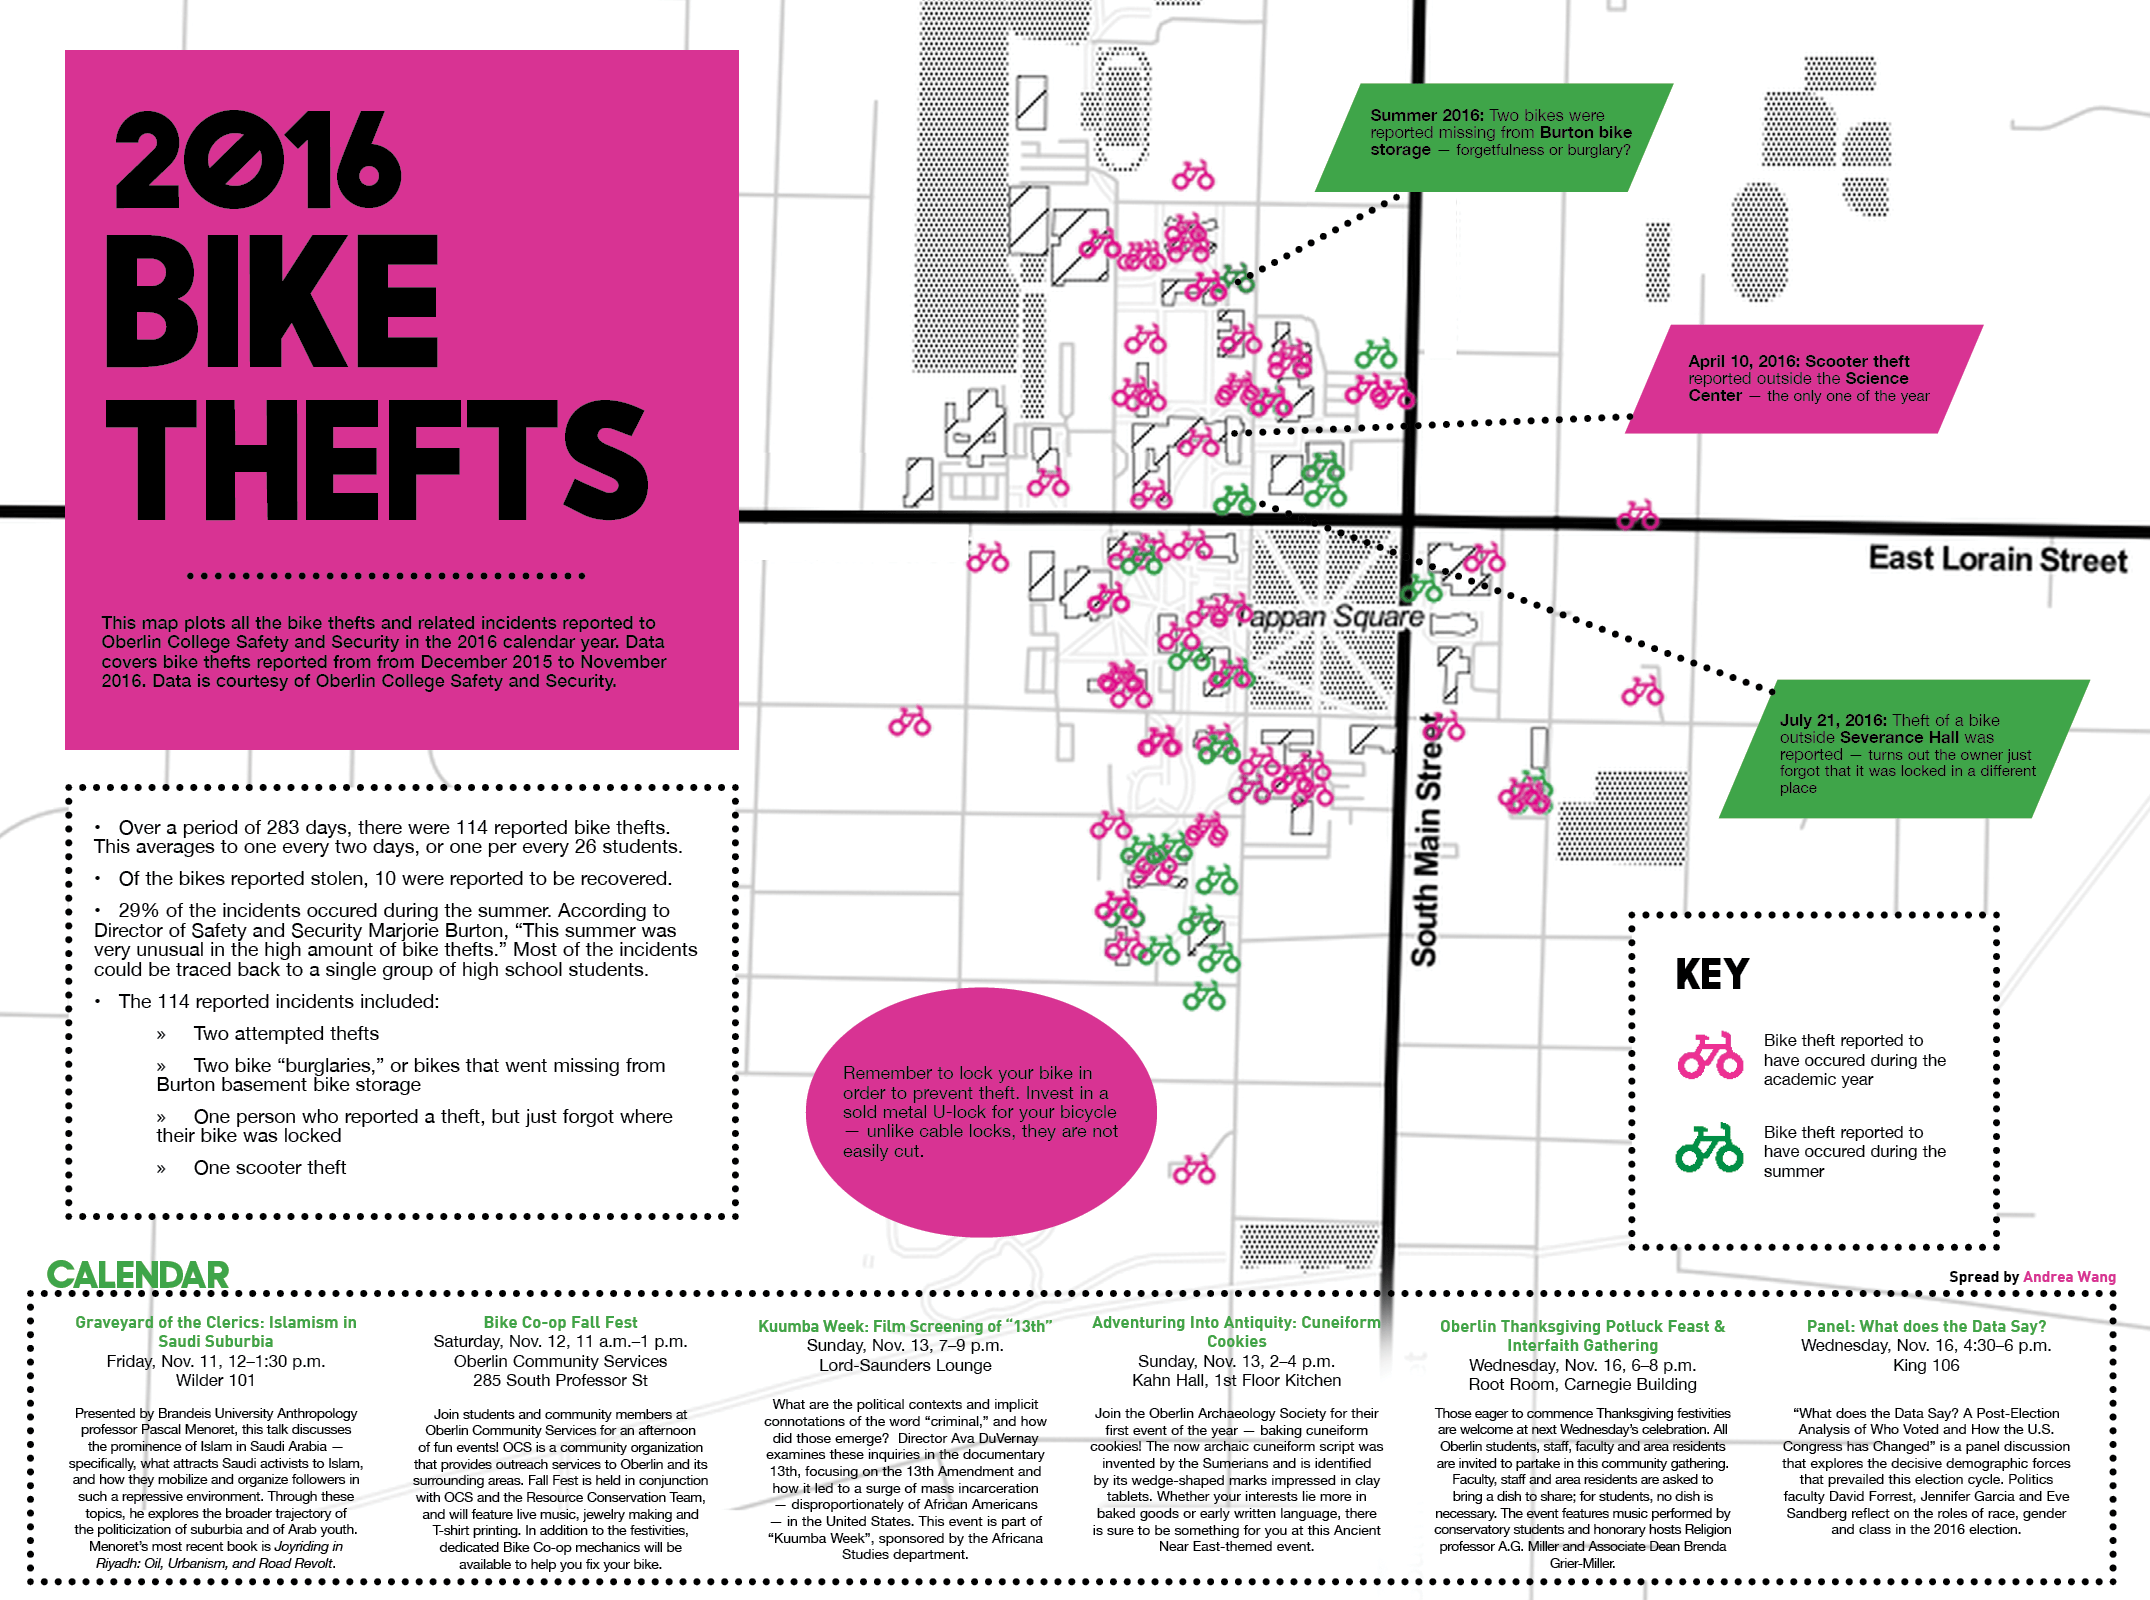 This Week: 2016 Bike Thefts